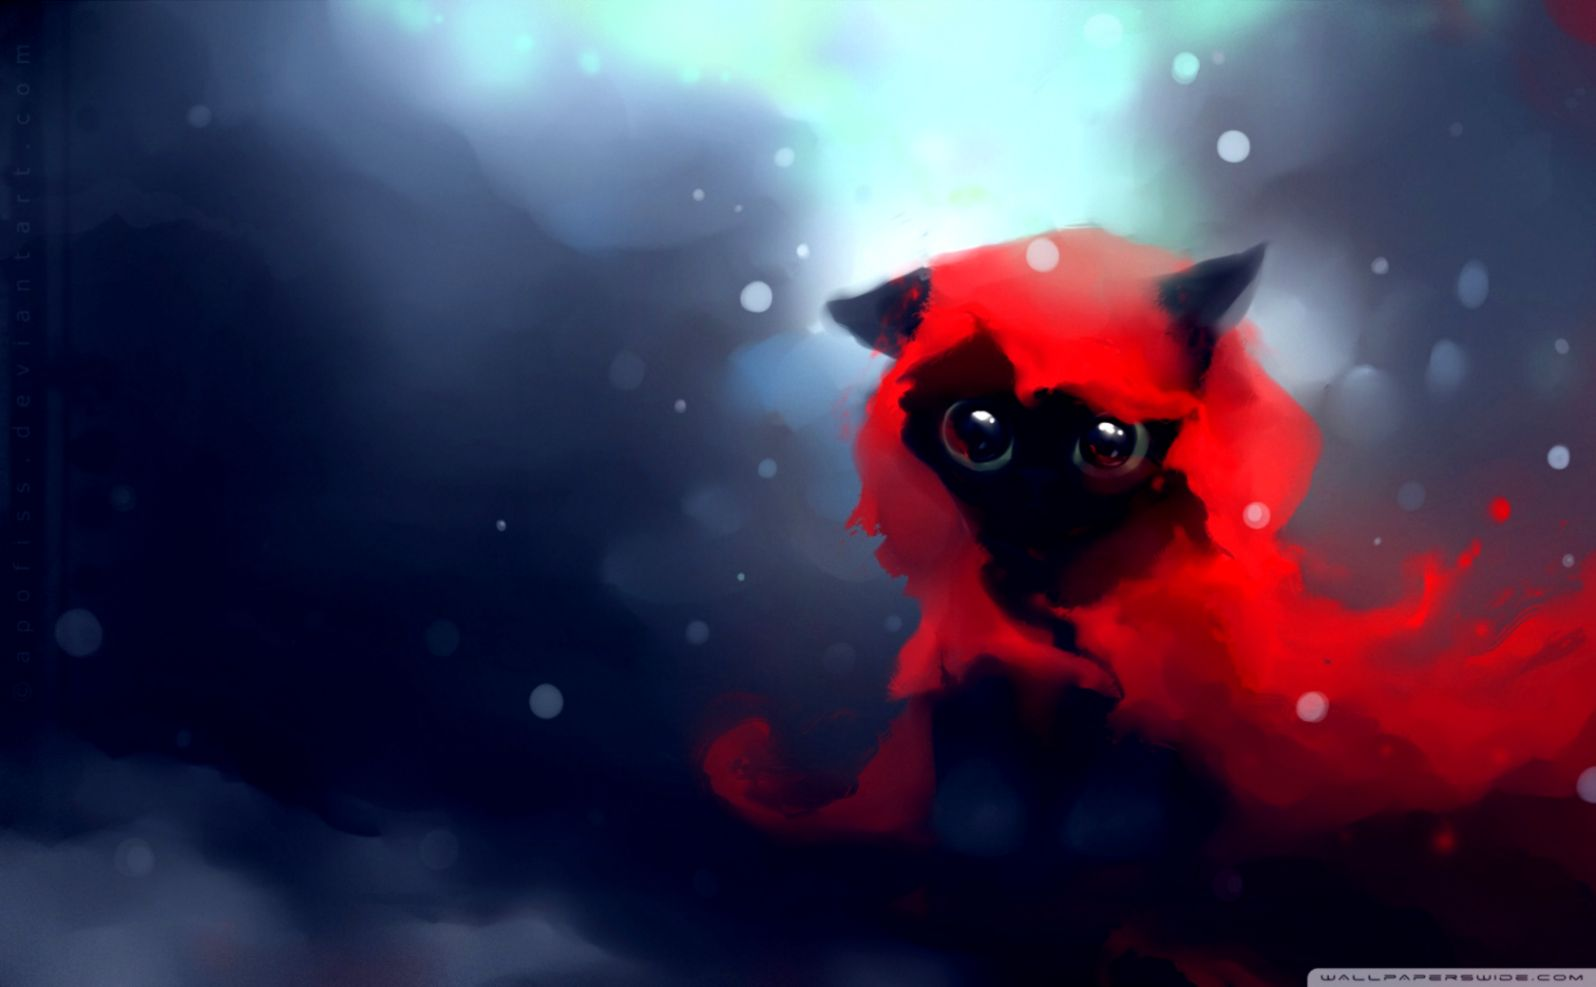 Art Cat Black Hd Wallpaper Gabybarrosv